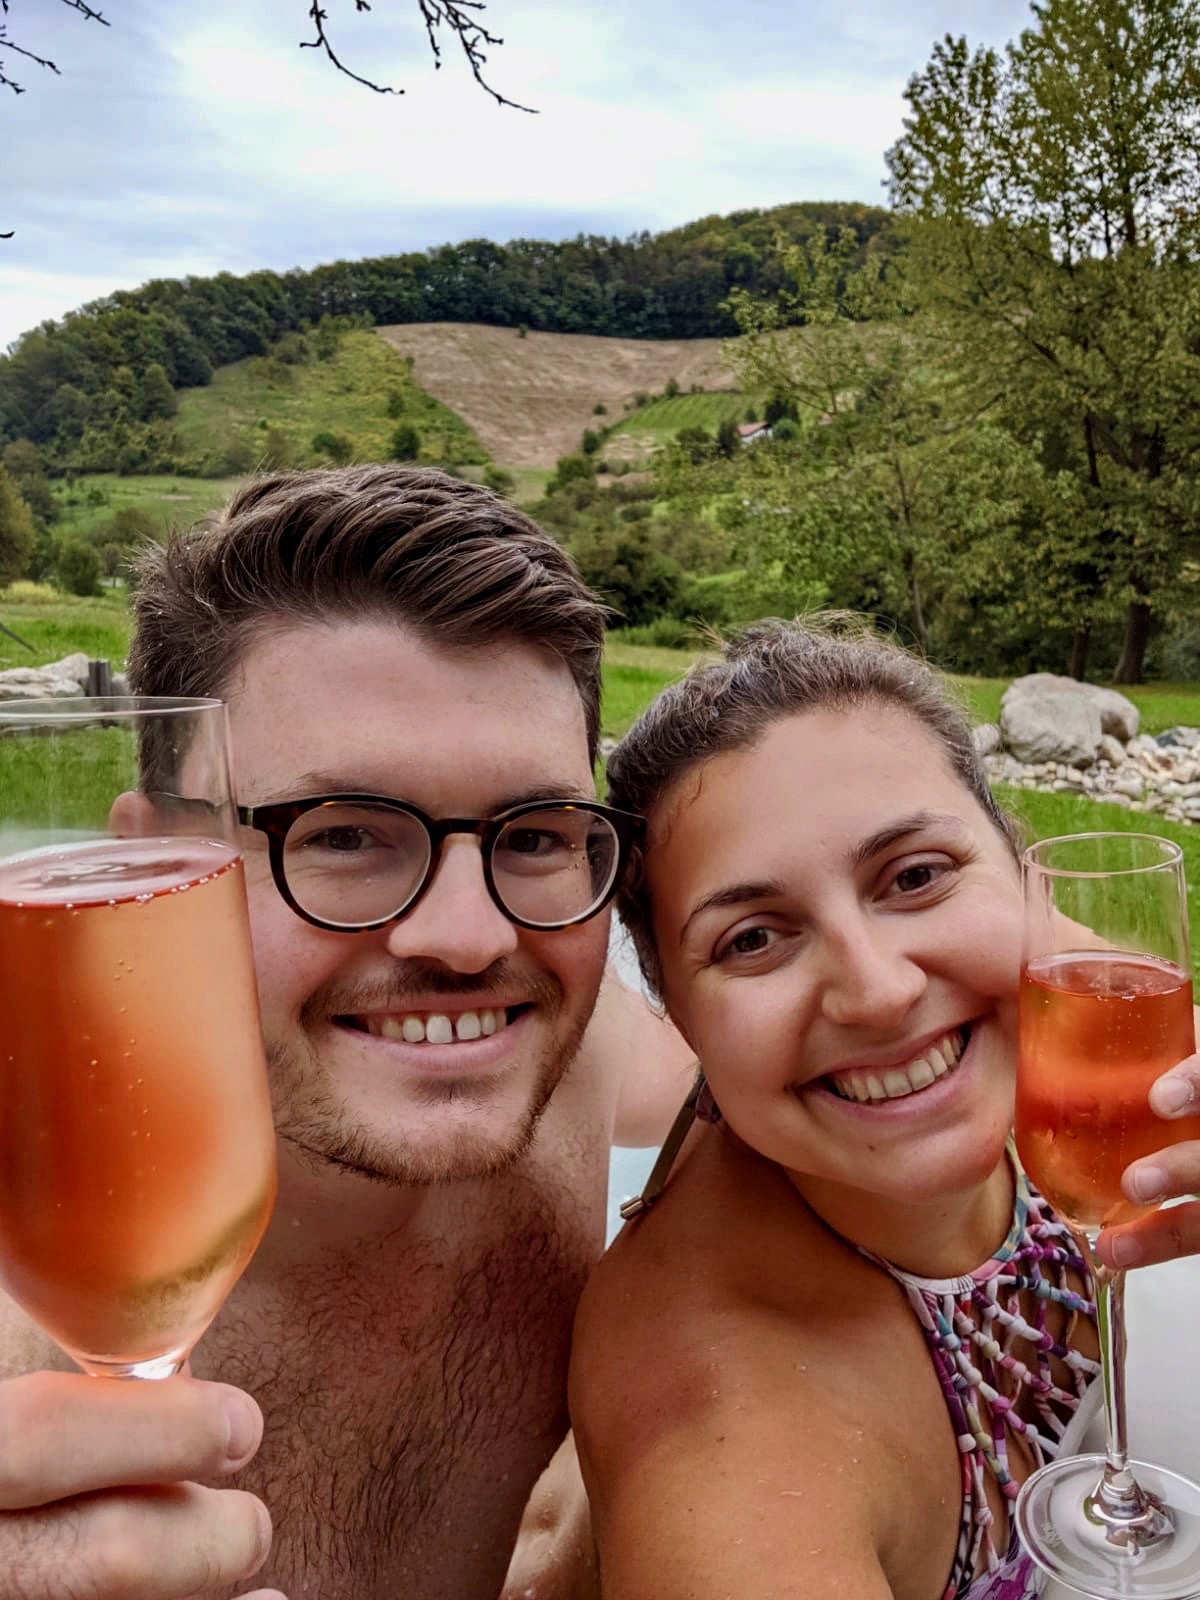 A couple holiday a glass of rose sparkling wine up and smiling at the camera